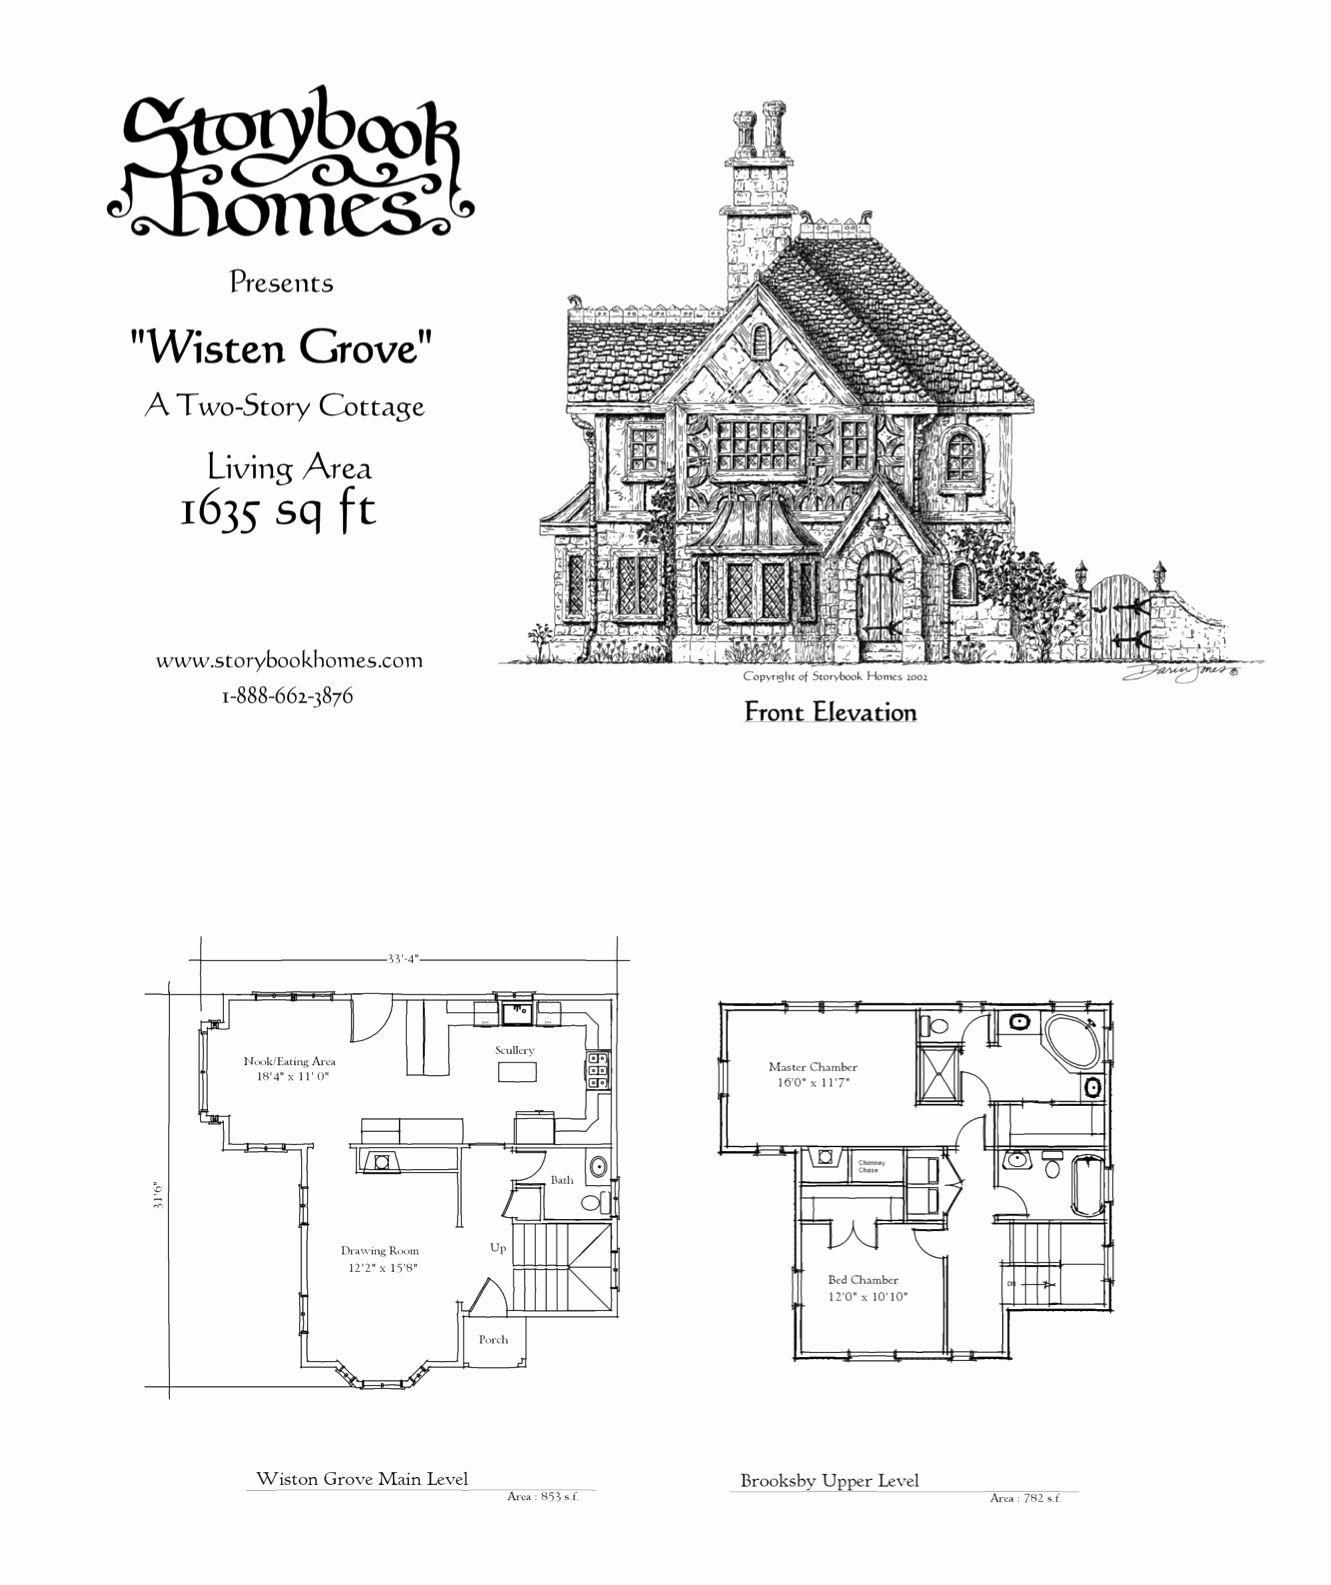 42 Plan Maison Victorienne Storybook Homes Storybook House Plan Cottage House Plans